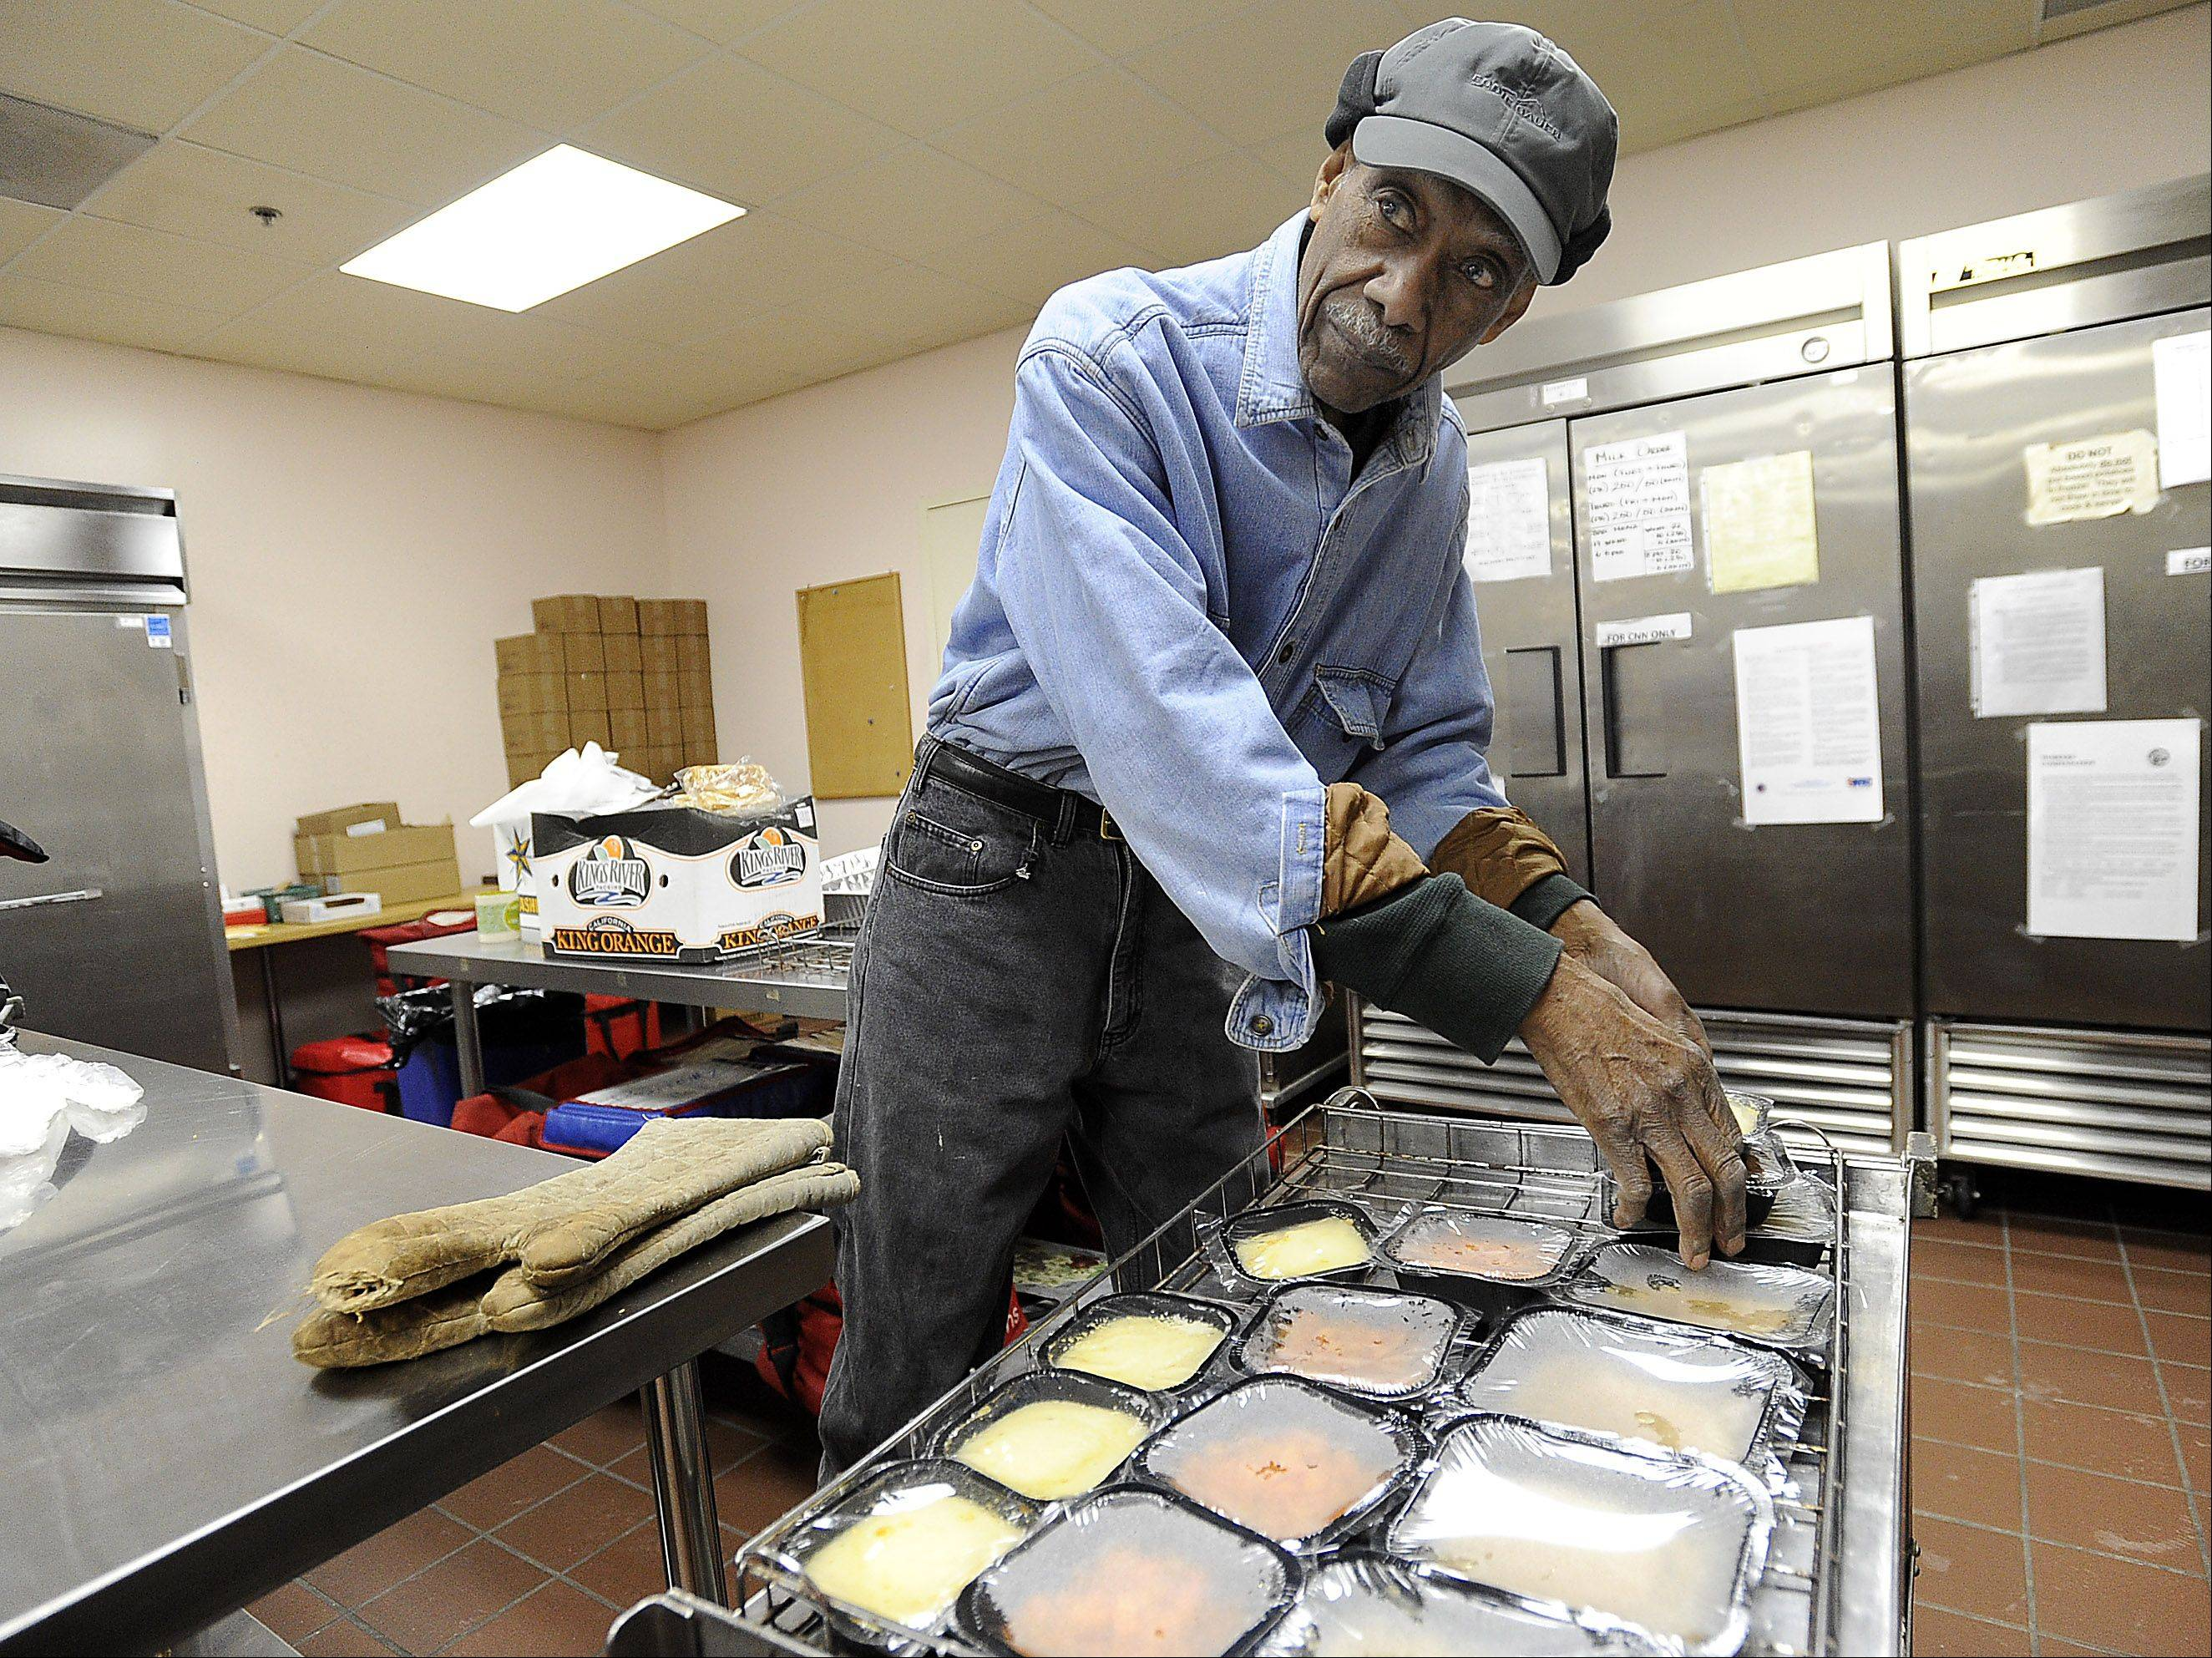 Meals on Wheels volunteer Samuel Grimes prepares for his delivery route, which will take him through the cold and snow in Des Plaines and other areas, where homebound seniors wait for their meals.